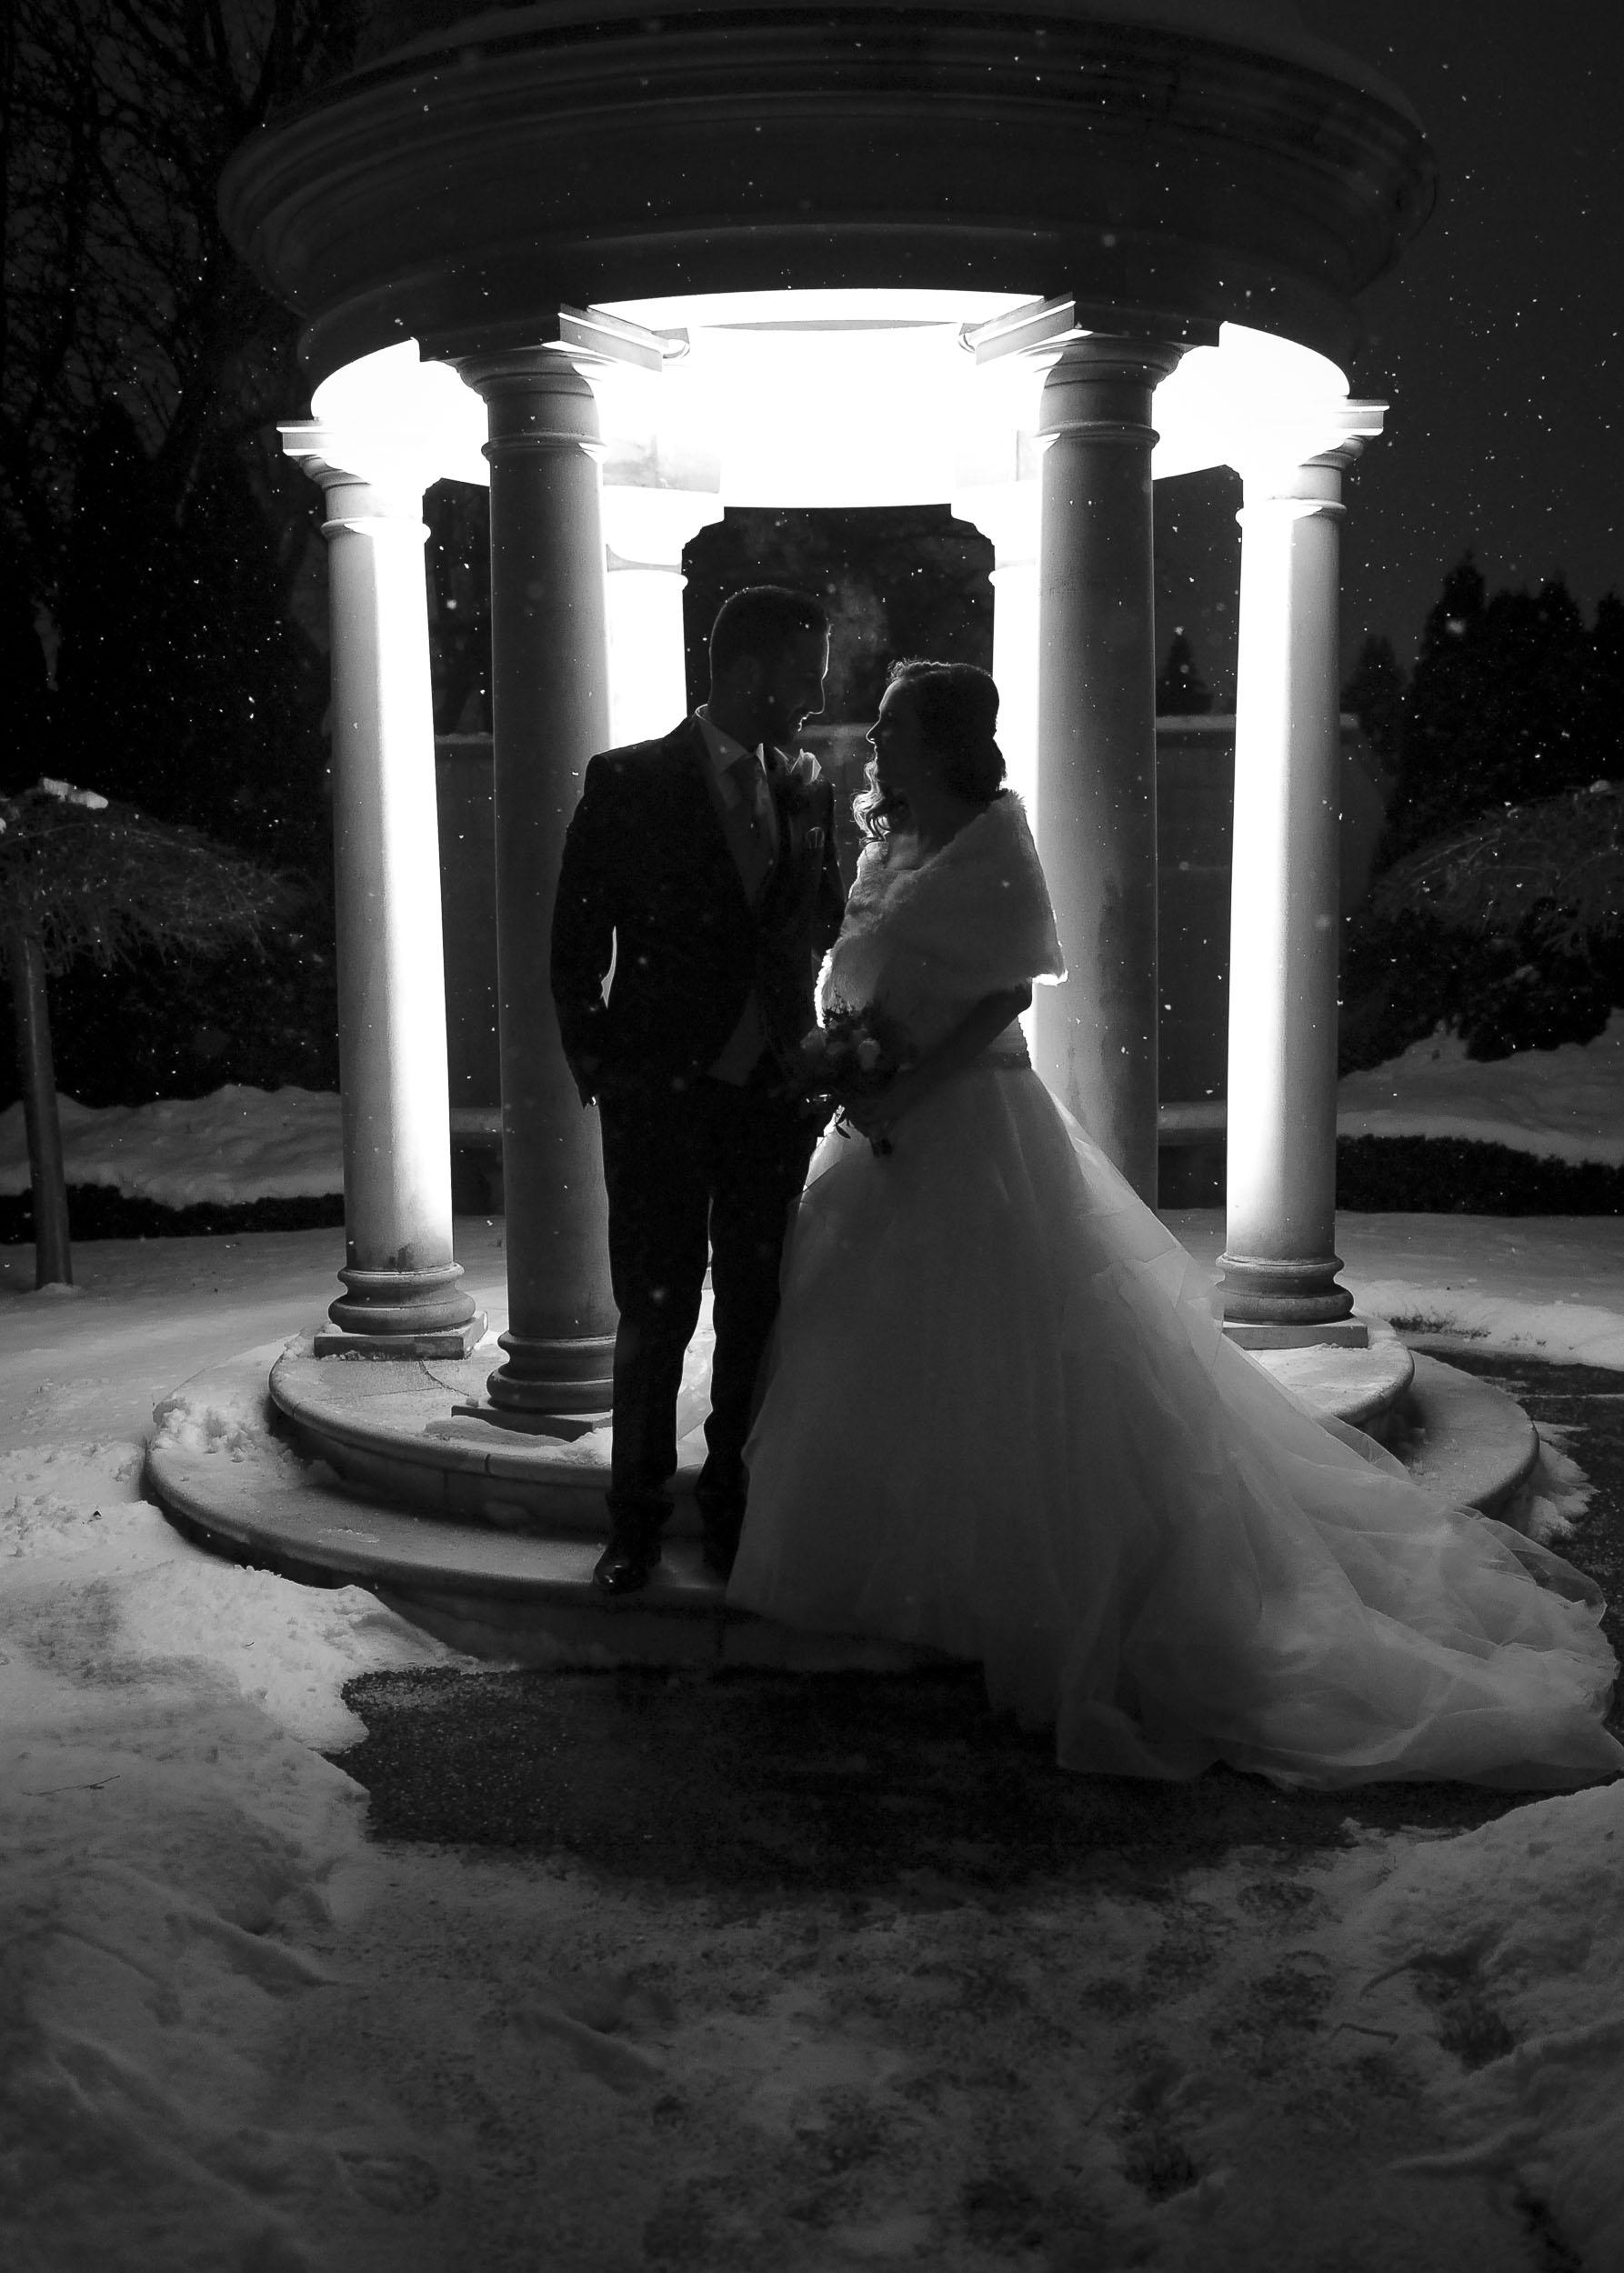 A romantic back-lit black and white photo on the gazebo.